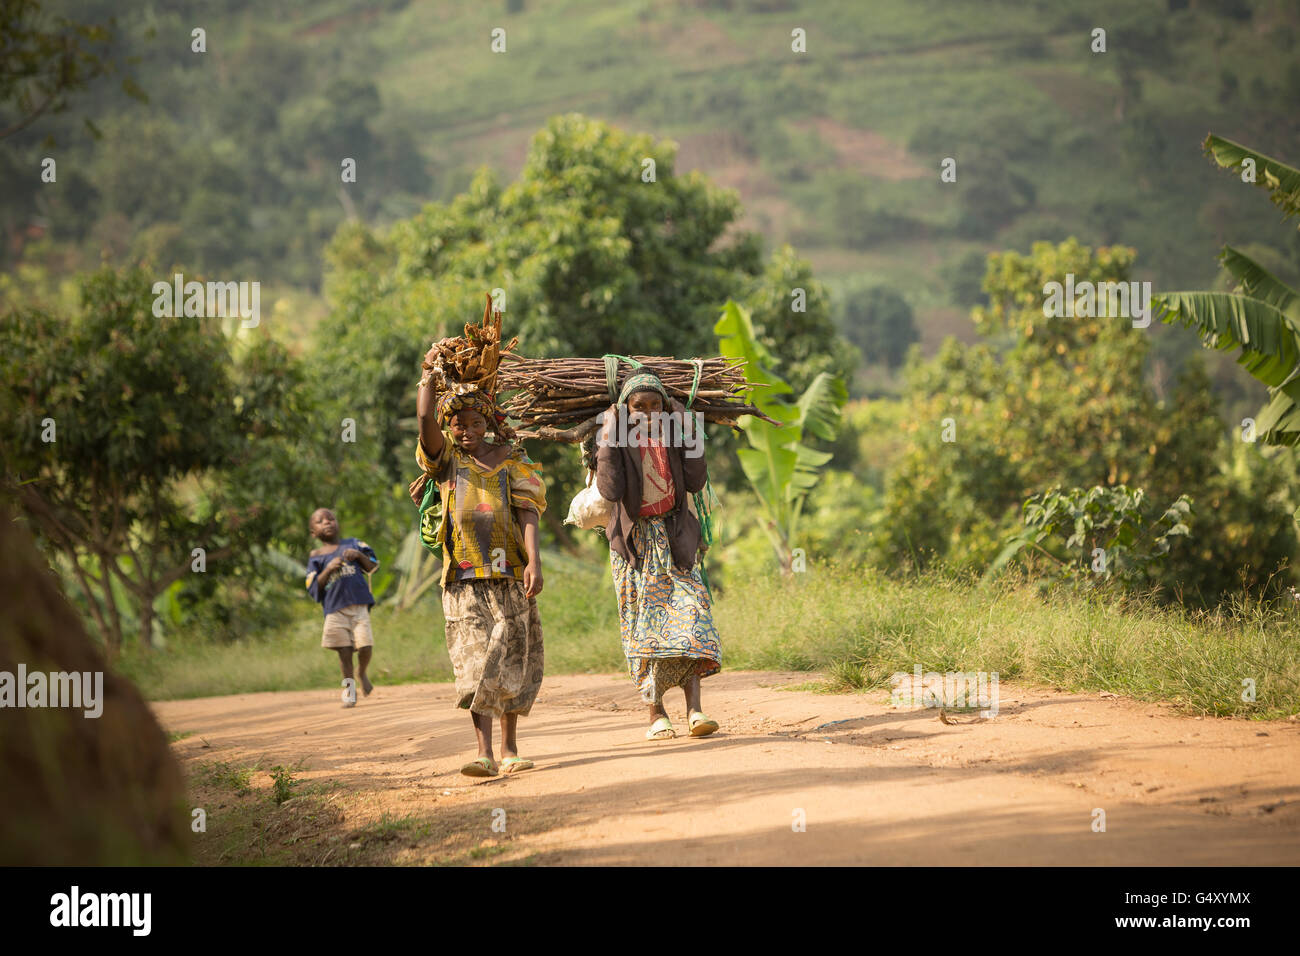 Women carry firewood down a rural village lane in the foothills of the Rwenzori Mountains on the DRC / Uganda border. - Stock Image